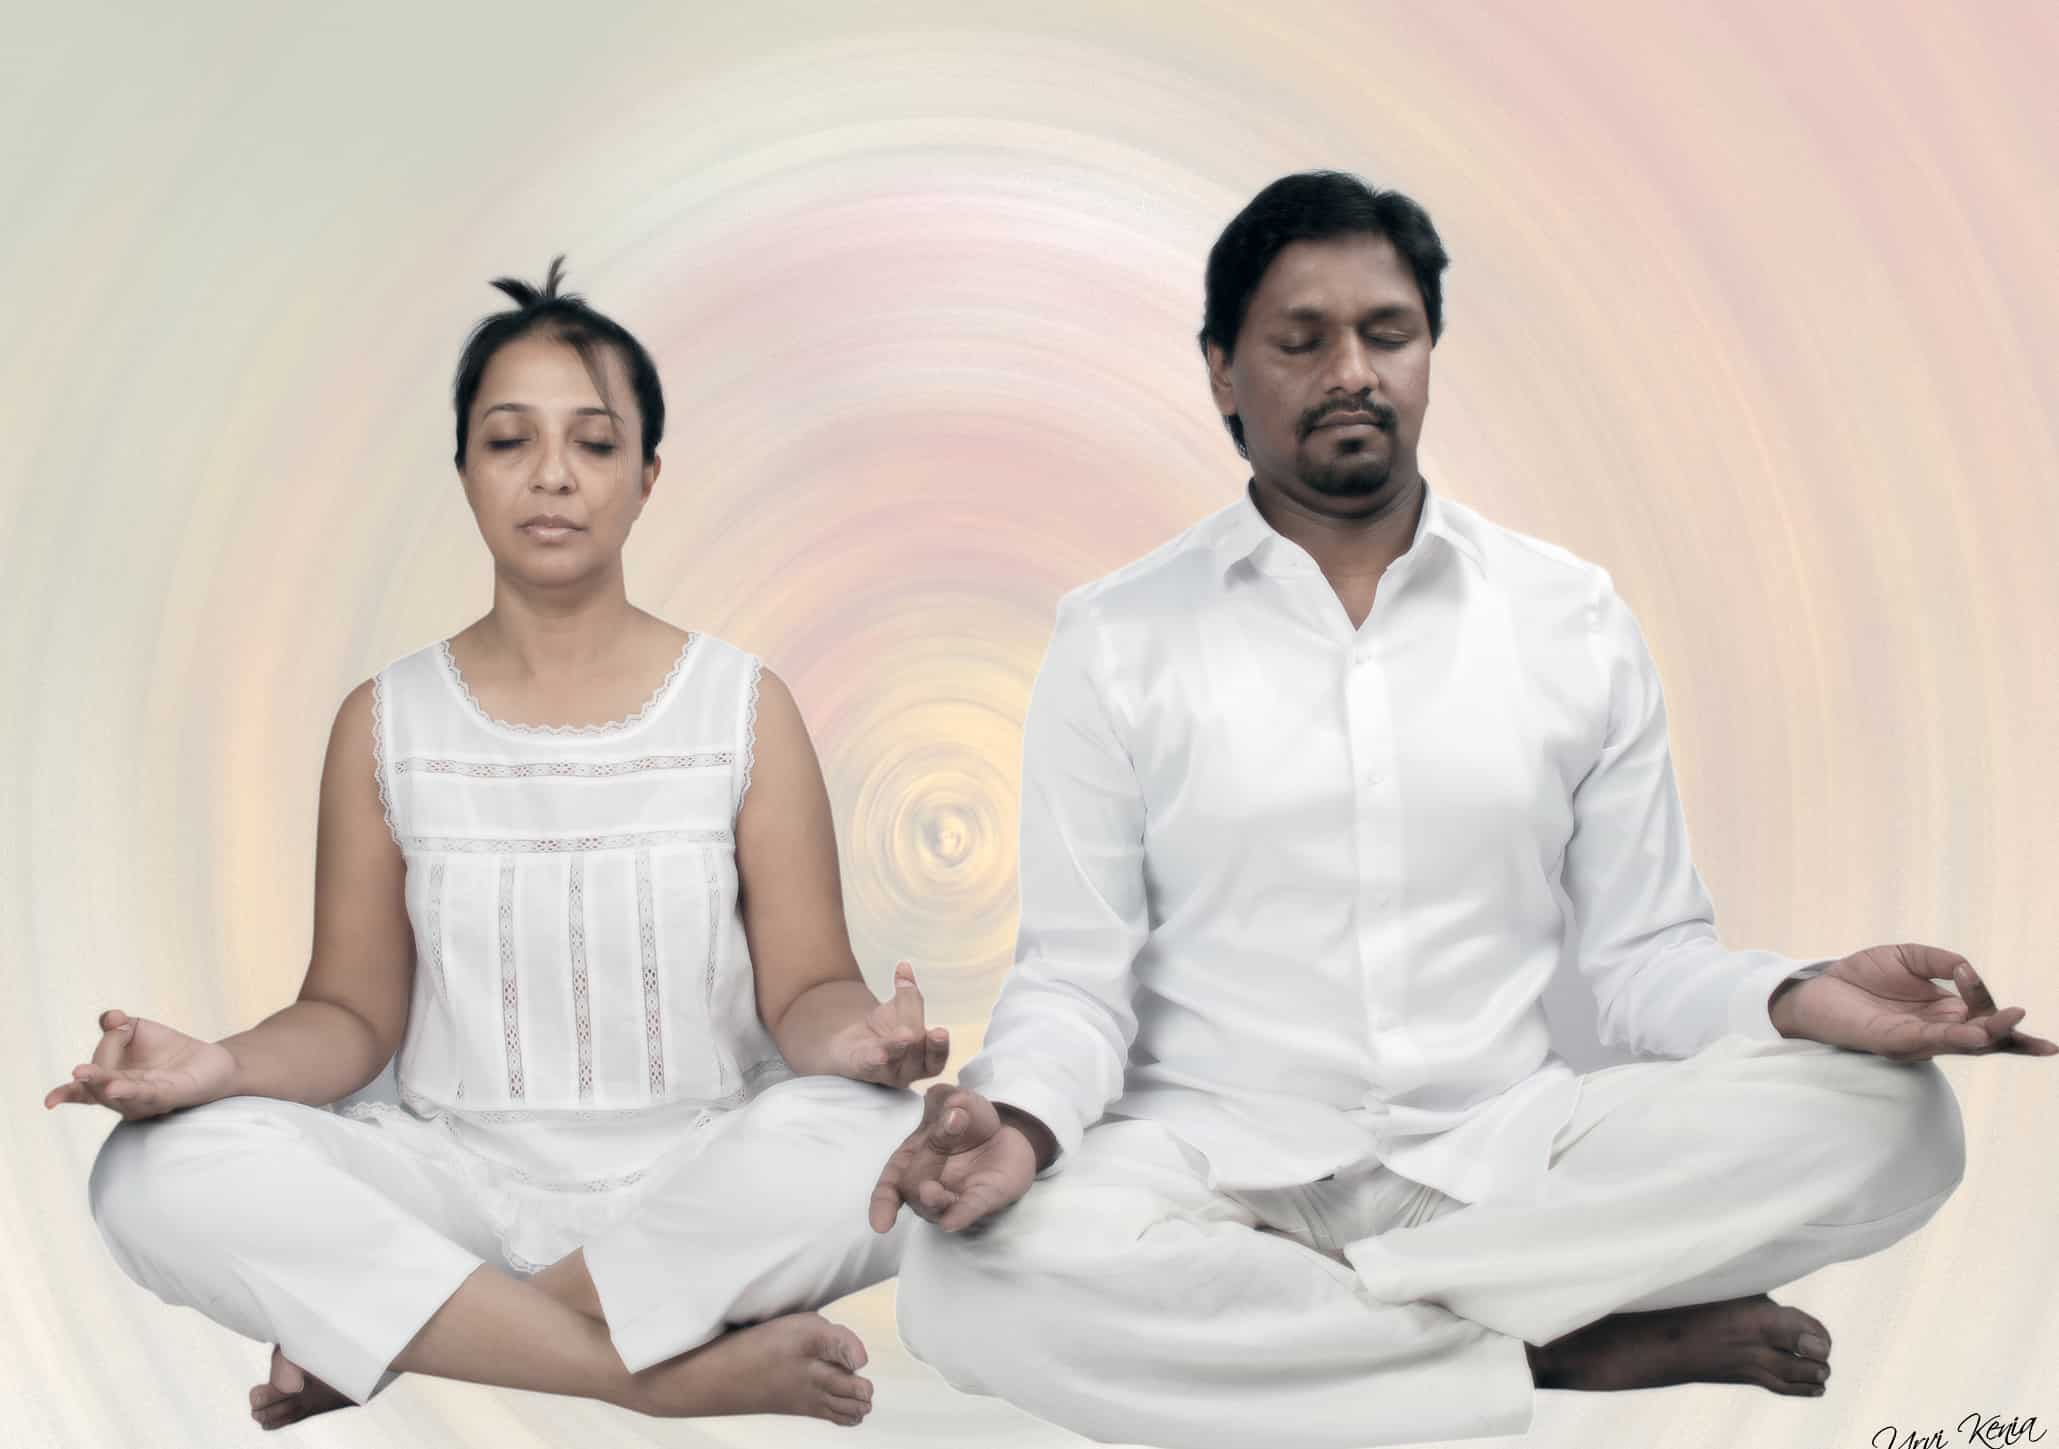 Meditation Dr. Yashodhara at Zoi